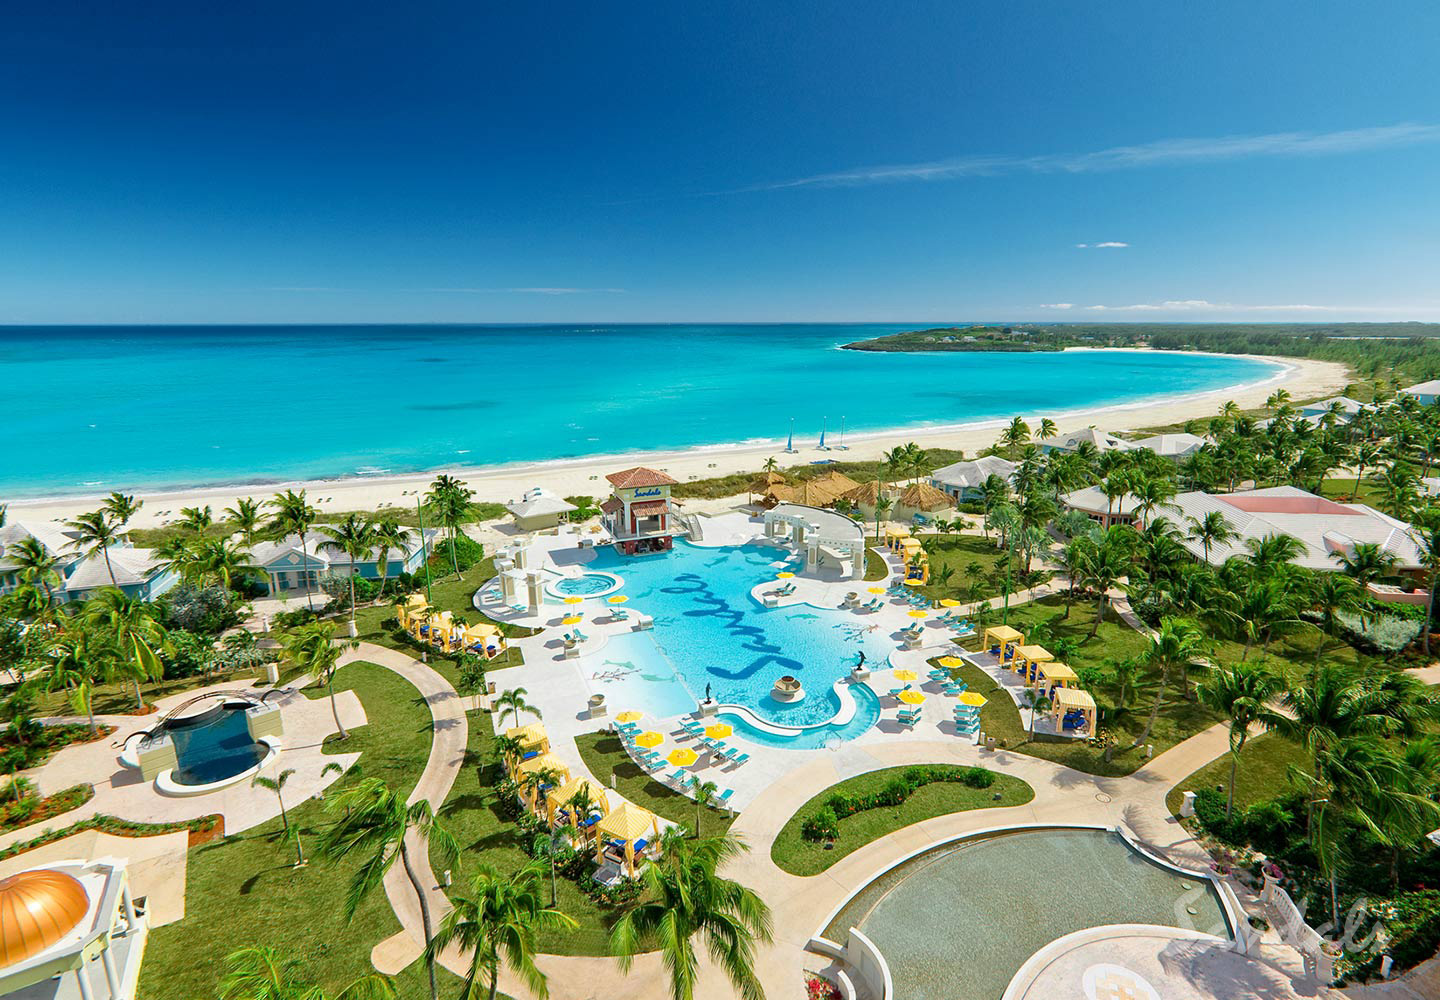 Travel Agency All-Inclusive Resort Sandals Emerald Bay 001